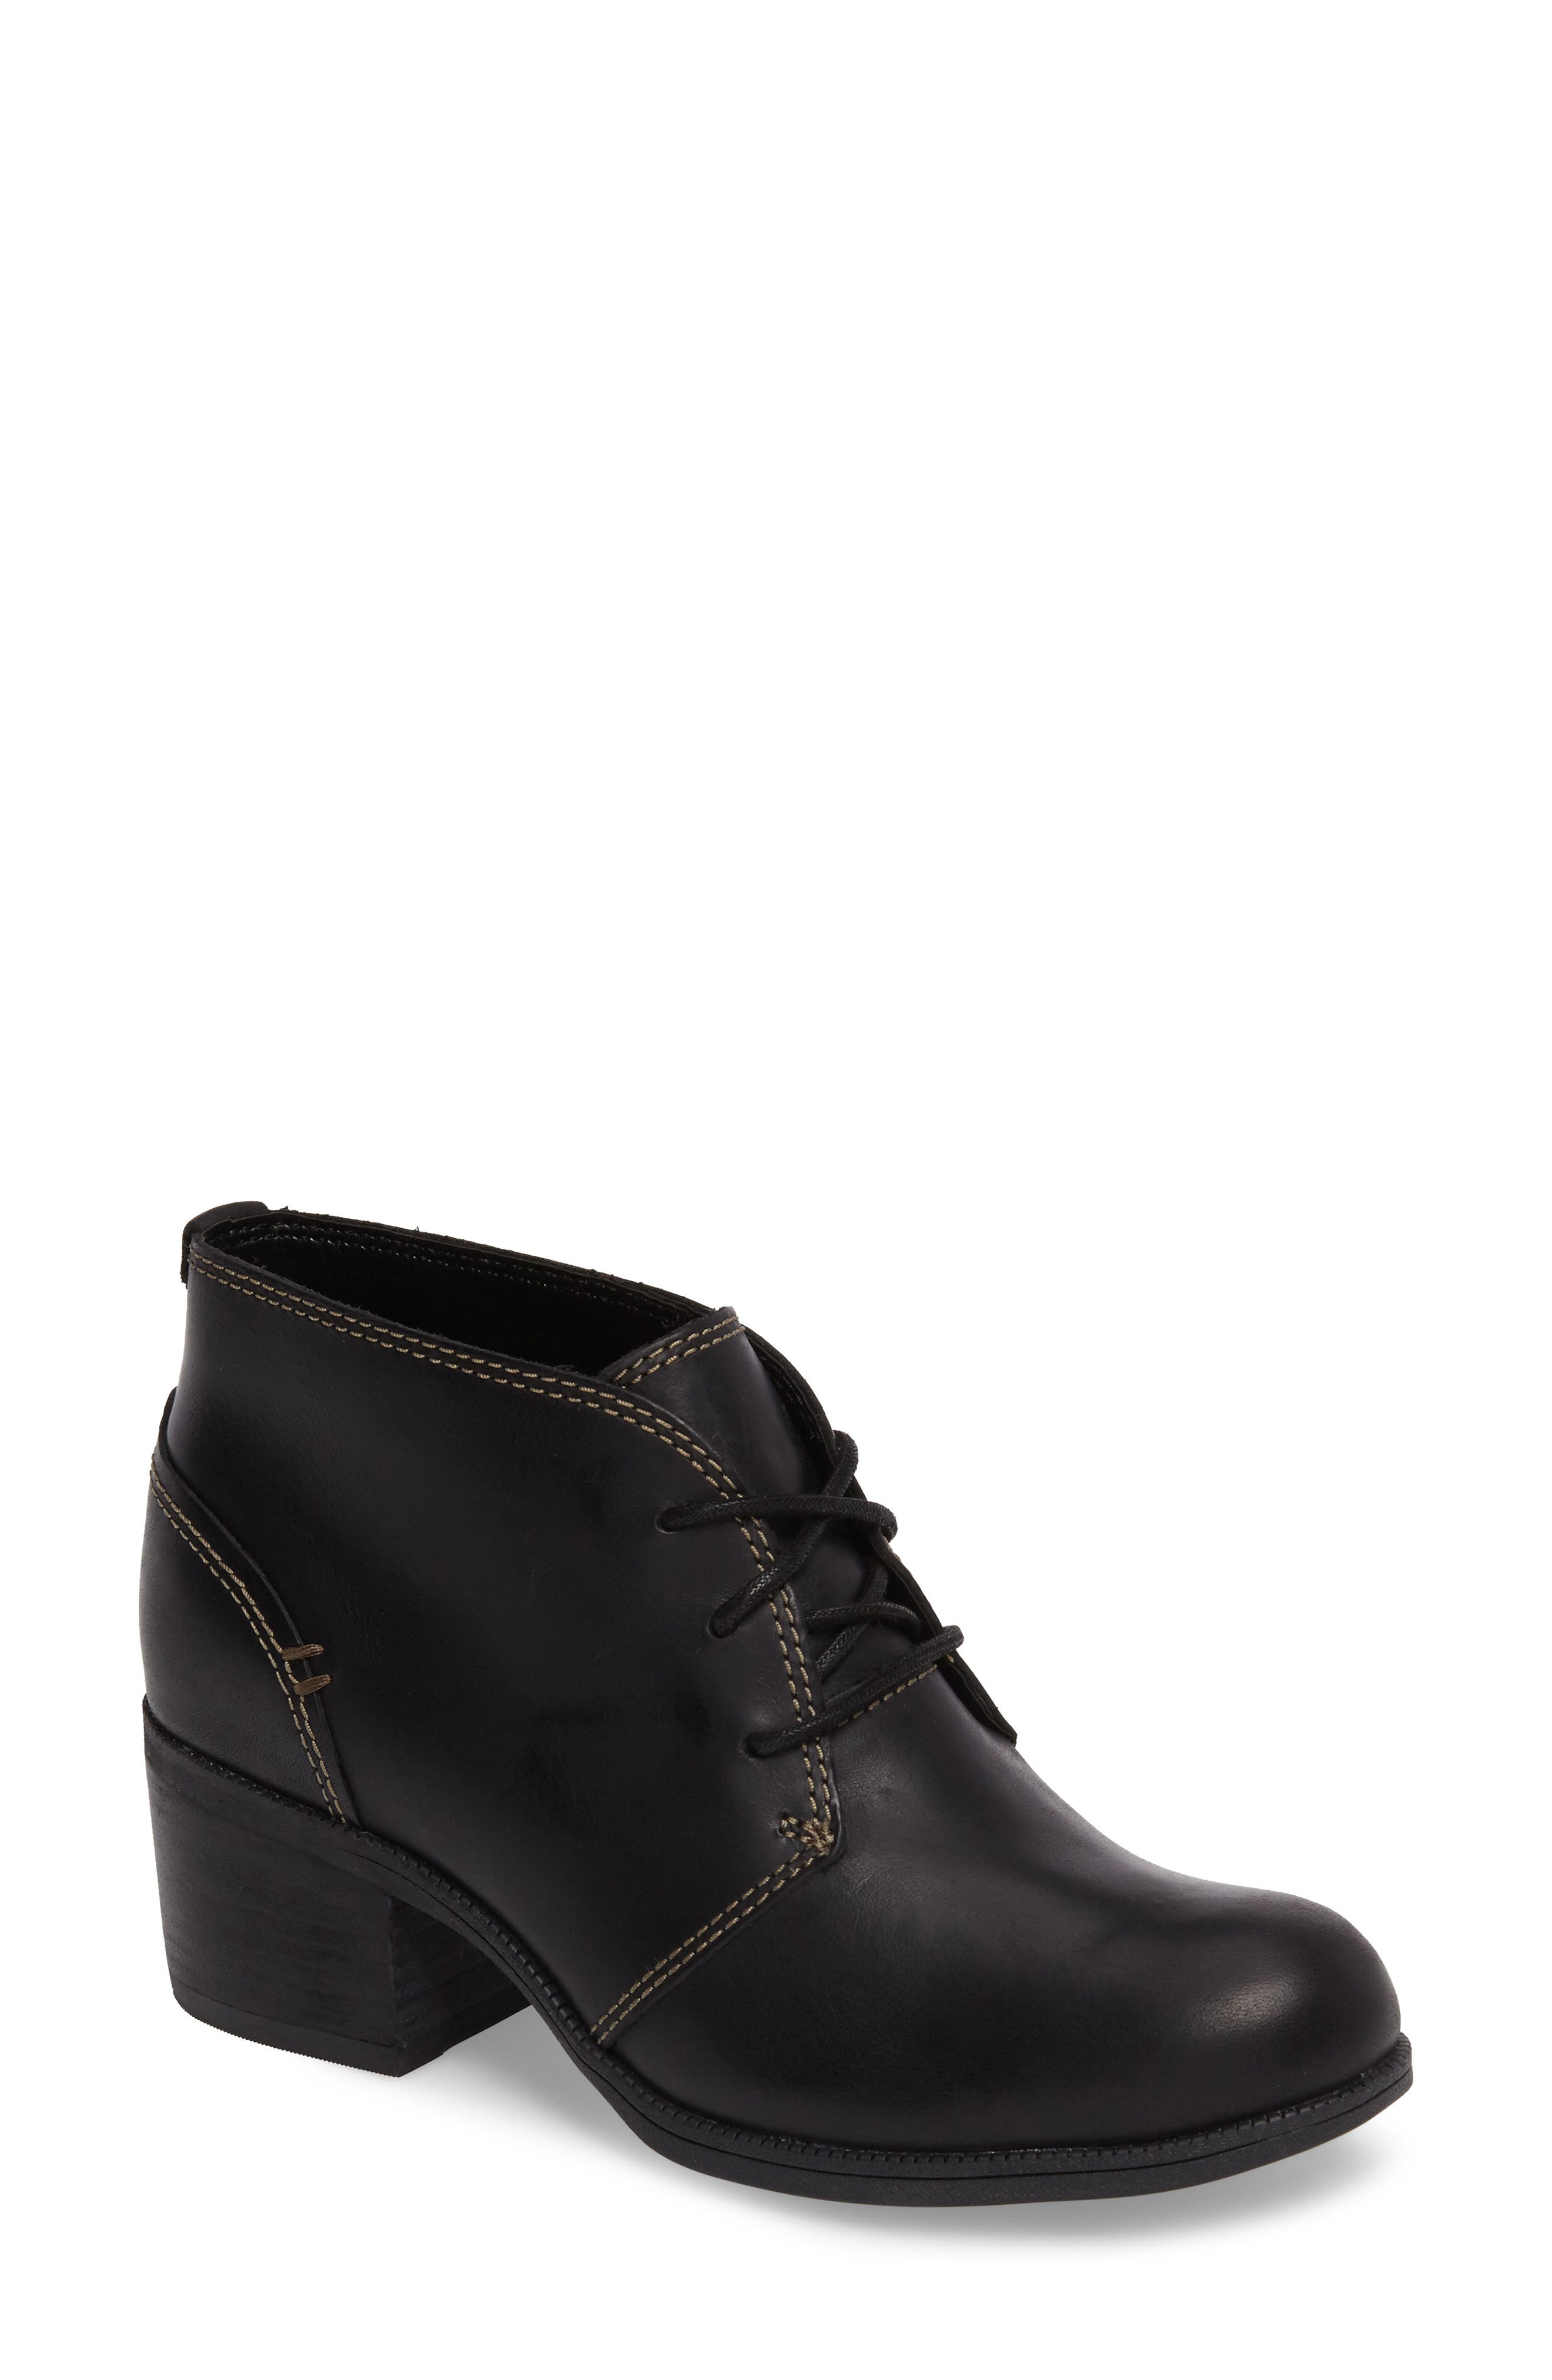 Alternate Image 1 Selected - Clarks® Maypearl Floral Boot (Women)